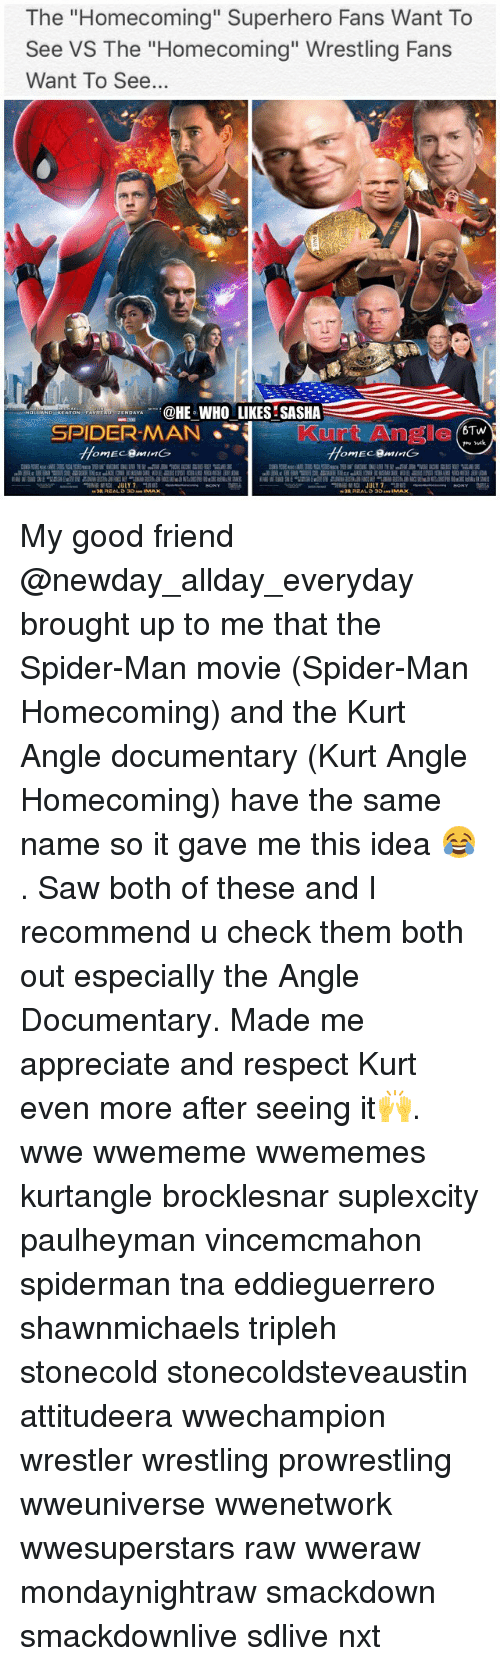 """Friends, Memes, and Respect: he """"Homecoming"""" Superhero Fans Want To  See VS The """"Homecoming"""" Wrestling Fans  Want To See..  HE WHO LIKES SASHA  M JULY7 My good friend @newday_allday_everyday brought up to me that the Spider-Man movie (Spider-Man Homecoming) and the Kurt Angle documentary (Kurt Angle Homecoming) have the same name so it gave me this idea 😂. Saw both of these and I recommend u check them both out especially the Angle Documentary. Made me appreciate and respect Kurt even more after seeing it🙌. wwe wwememe wwememes kurtangle brocklesnar suplexcity paulheyman vincemcmahon spiderman tna eddieguerrero shawnmichaels tripleh stonecold stonecoldsteveaustin attitudeera wwechampion wrestler wrestling prowrestling wweuniverse wwenetwork wwesuperstars raw wweraw mondaynightraw smackdown smackdownlive sdlive nxt"""